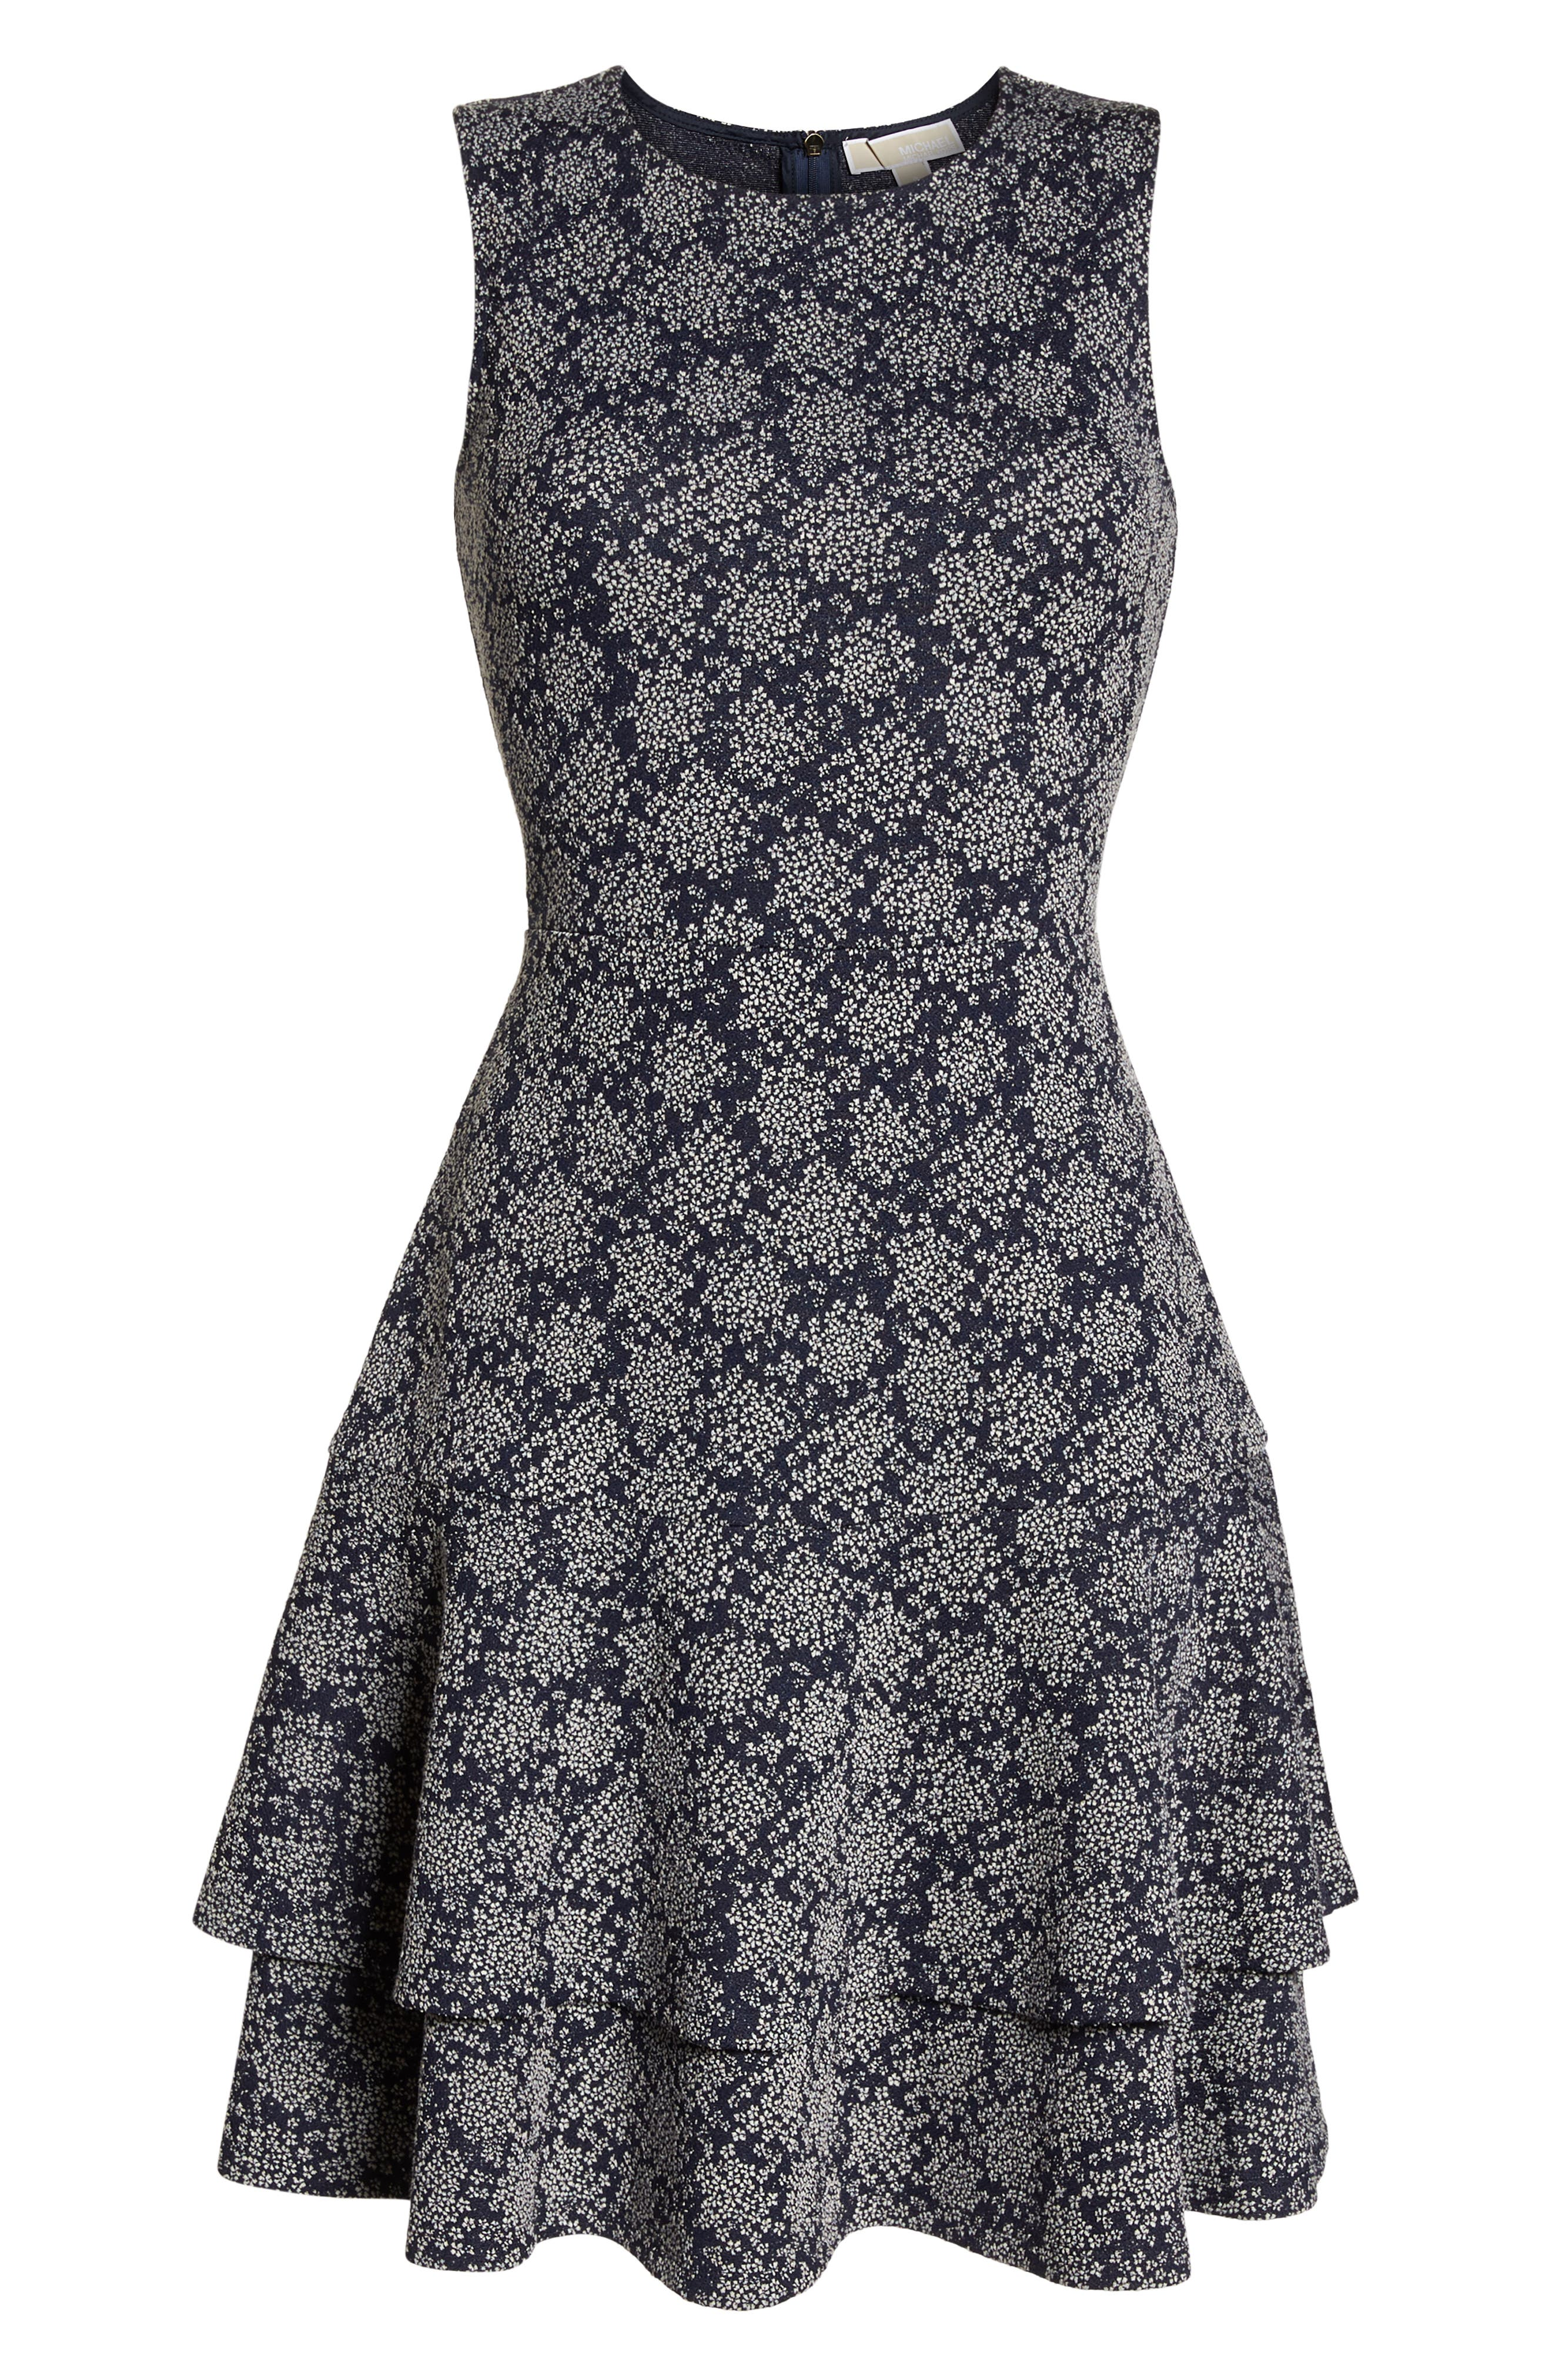 Tiered Fit & Flare Dress,                             Alternate thumbnail 7, color,                             TRUE NAVY/ WHITE